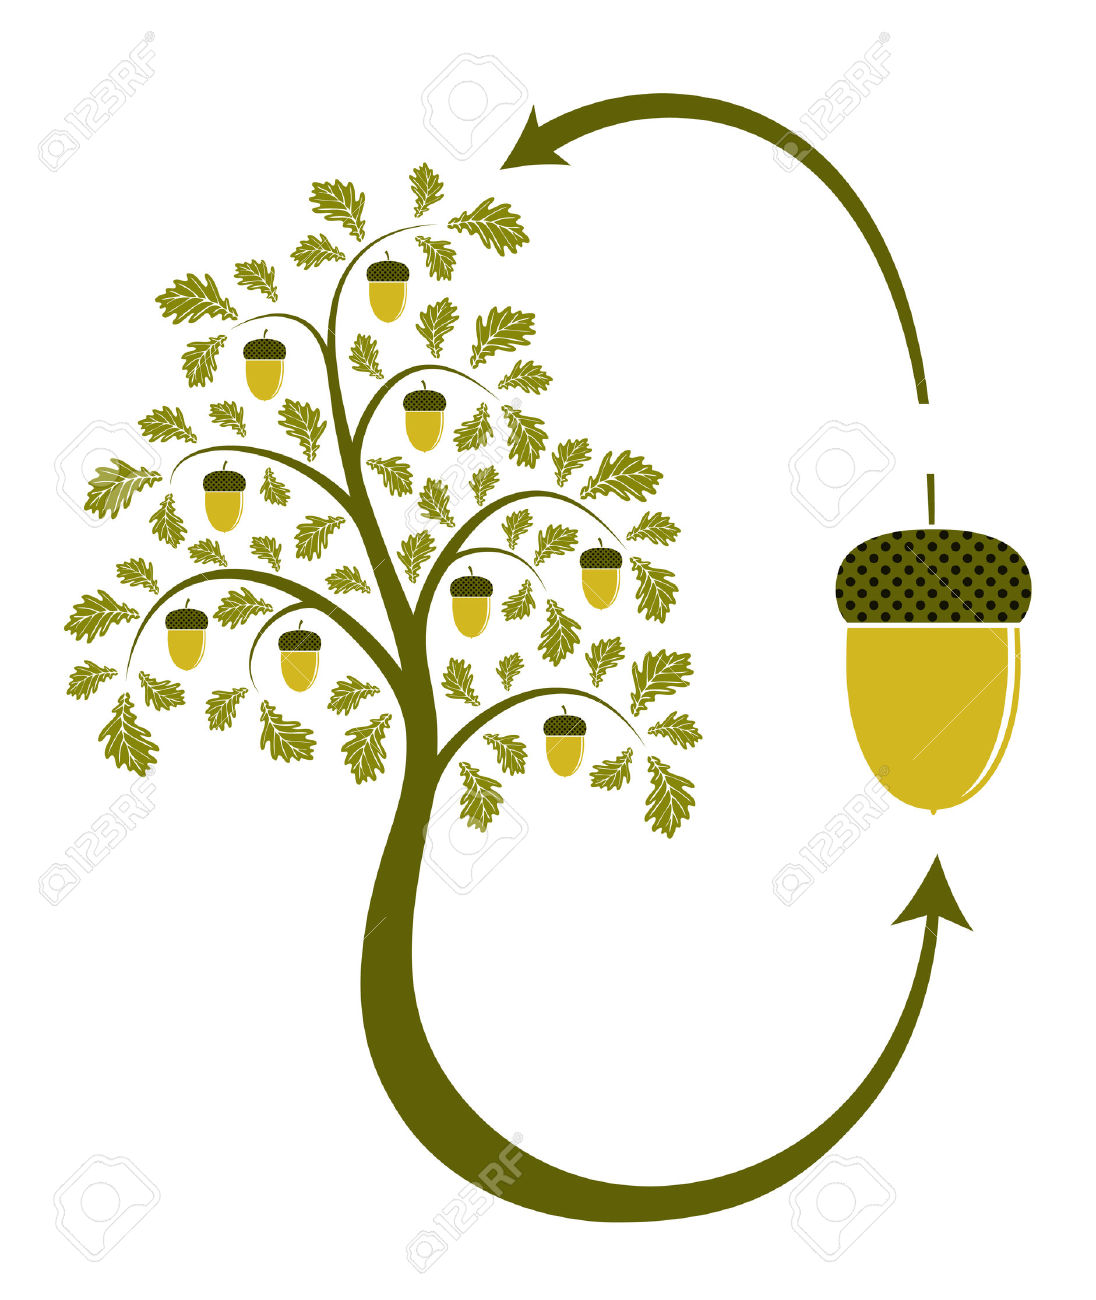 7885907-oak-tree-life-cycle-on-white-background-Stock-Vector-acorn